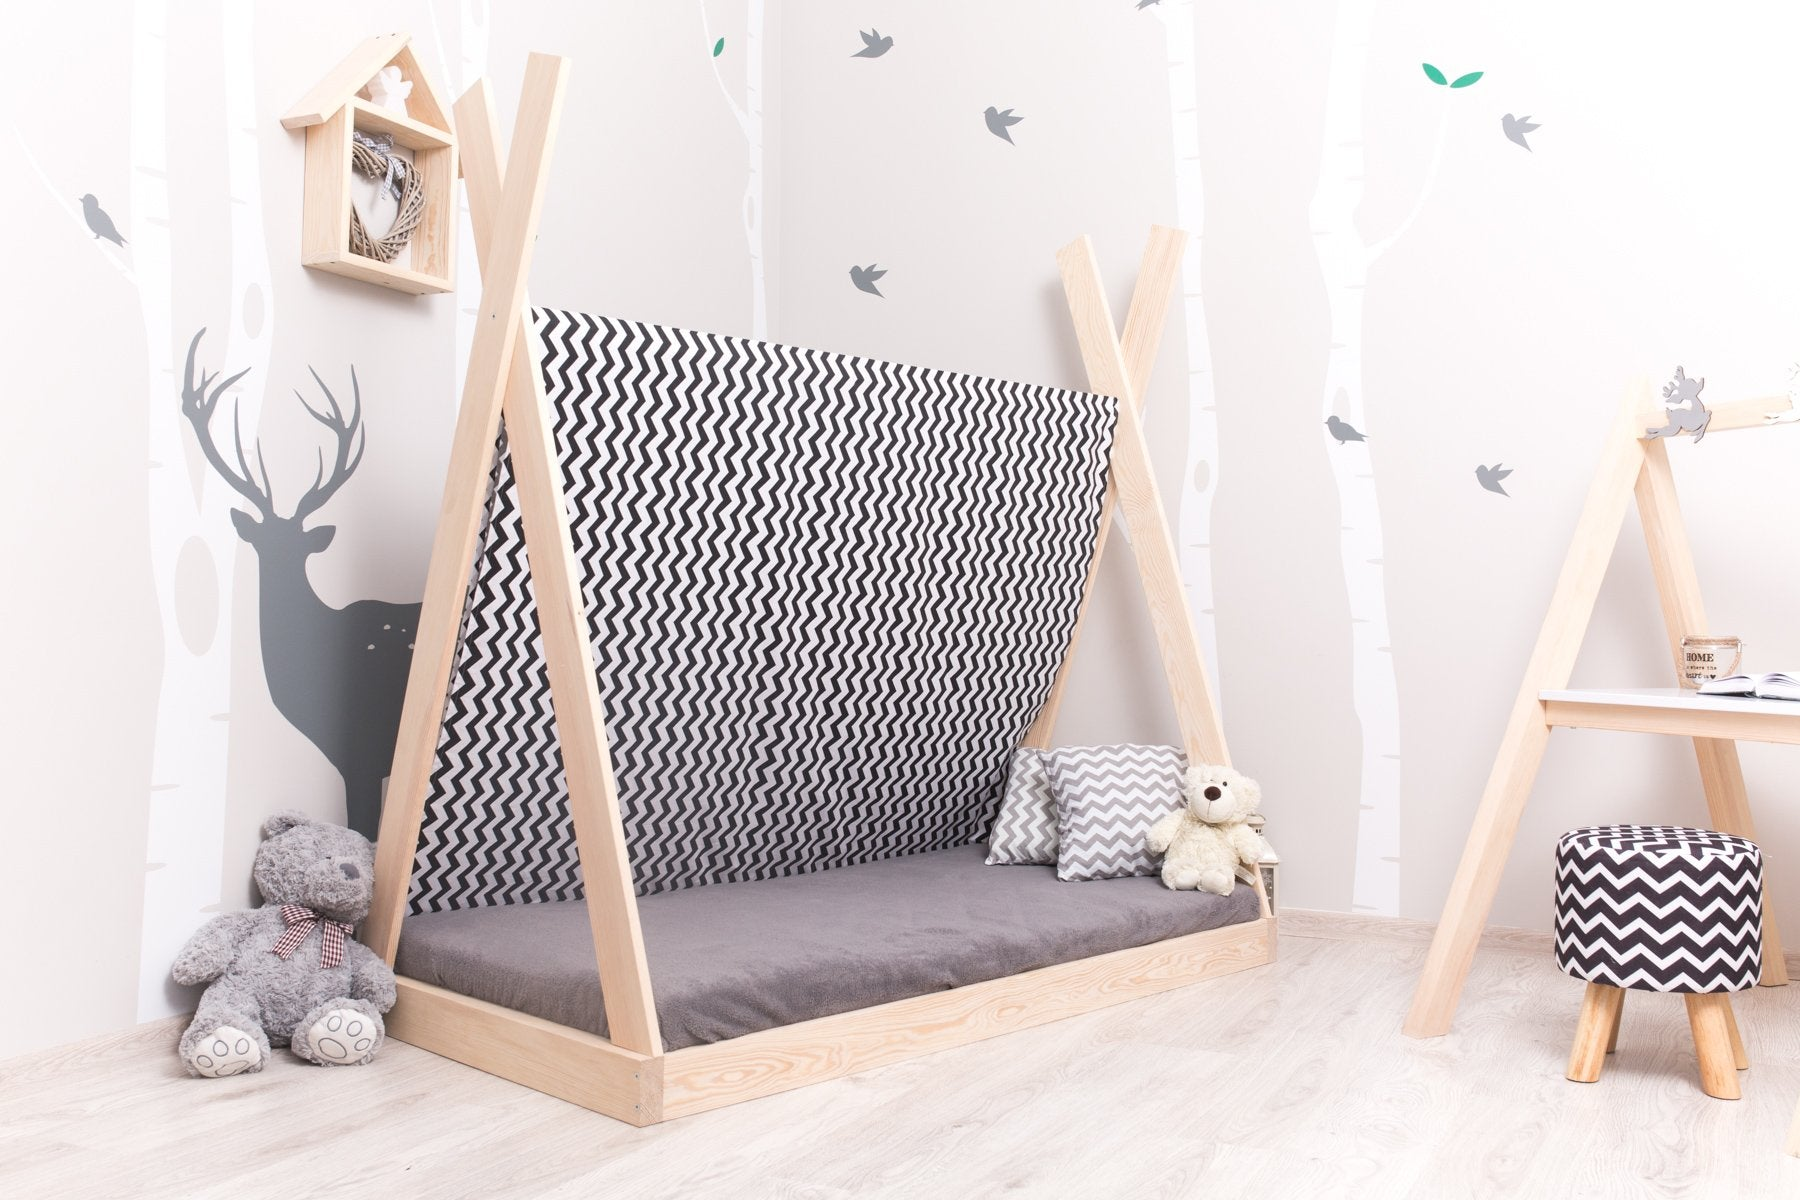 Teepee Floor Bed Cheaper Than Retail Price Buy Clothing Accessories And Lifestyle Products For Women Men